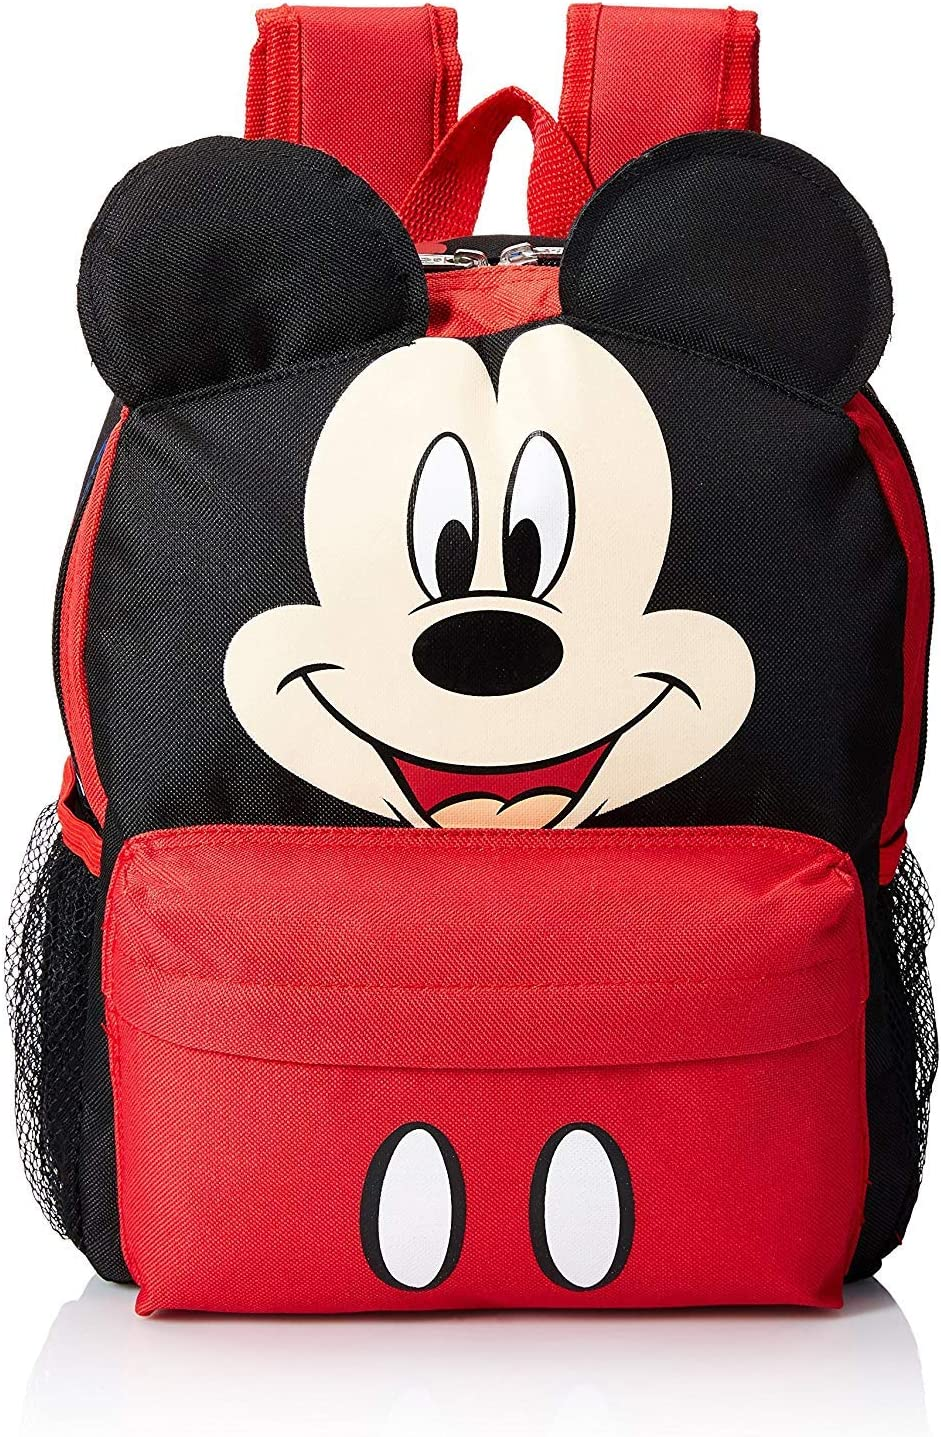 "Disney Mickey Mouse Smiley Face and Ears Kids 12"" Backpack"